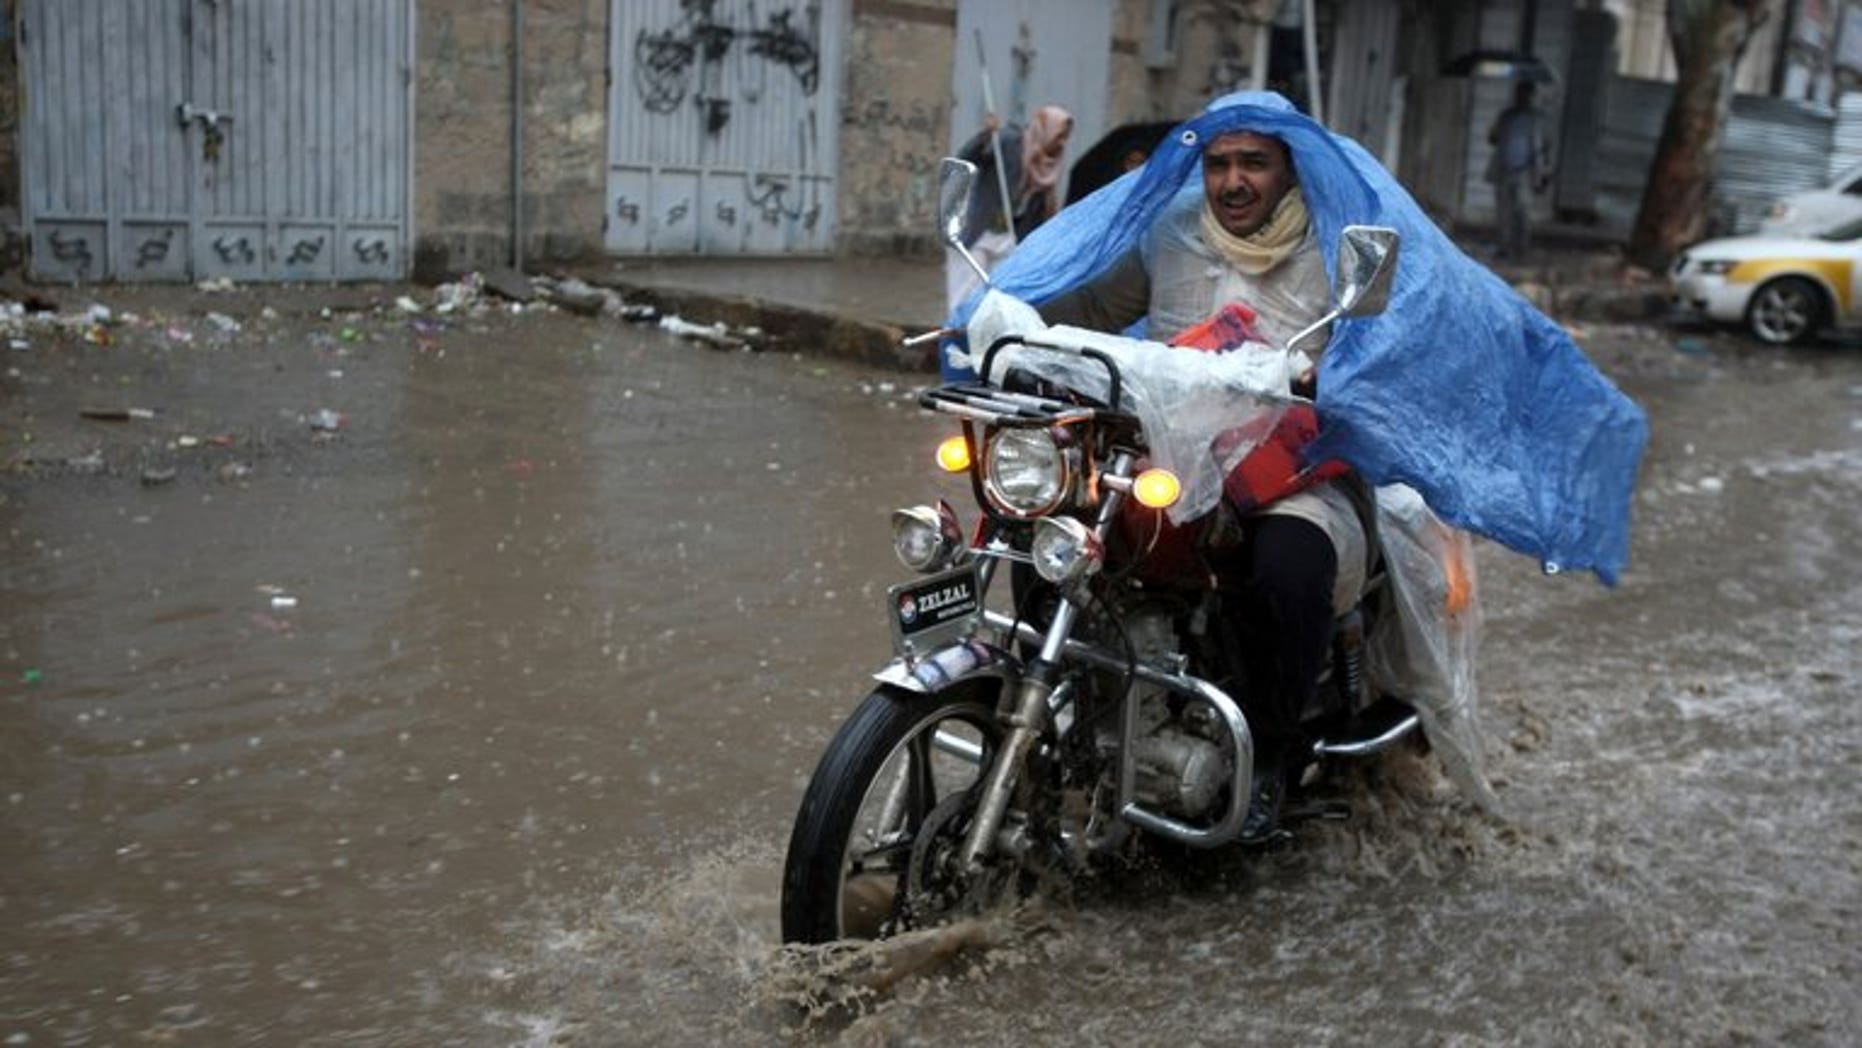 A Yemeni man rides his motorcycle through a flooded street following heavy rains in the capital Sanaa on April 9, 2012. Lightning and flash floods have killed 50 people in Yemen since Friday, including 27 who died when a torrent washed away a wedding convoy, local officials said Saturday.